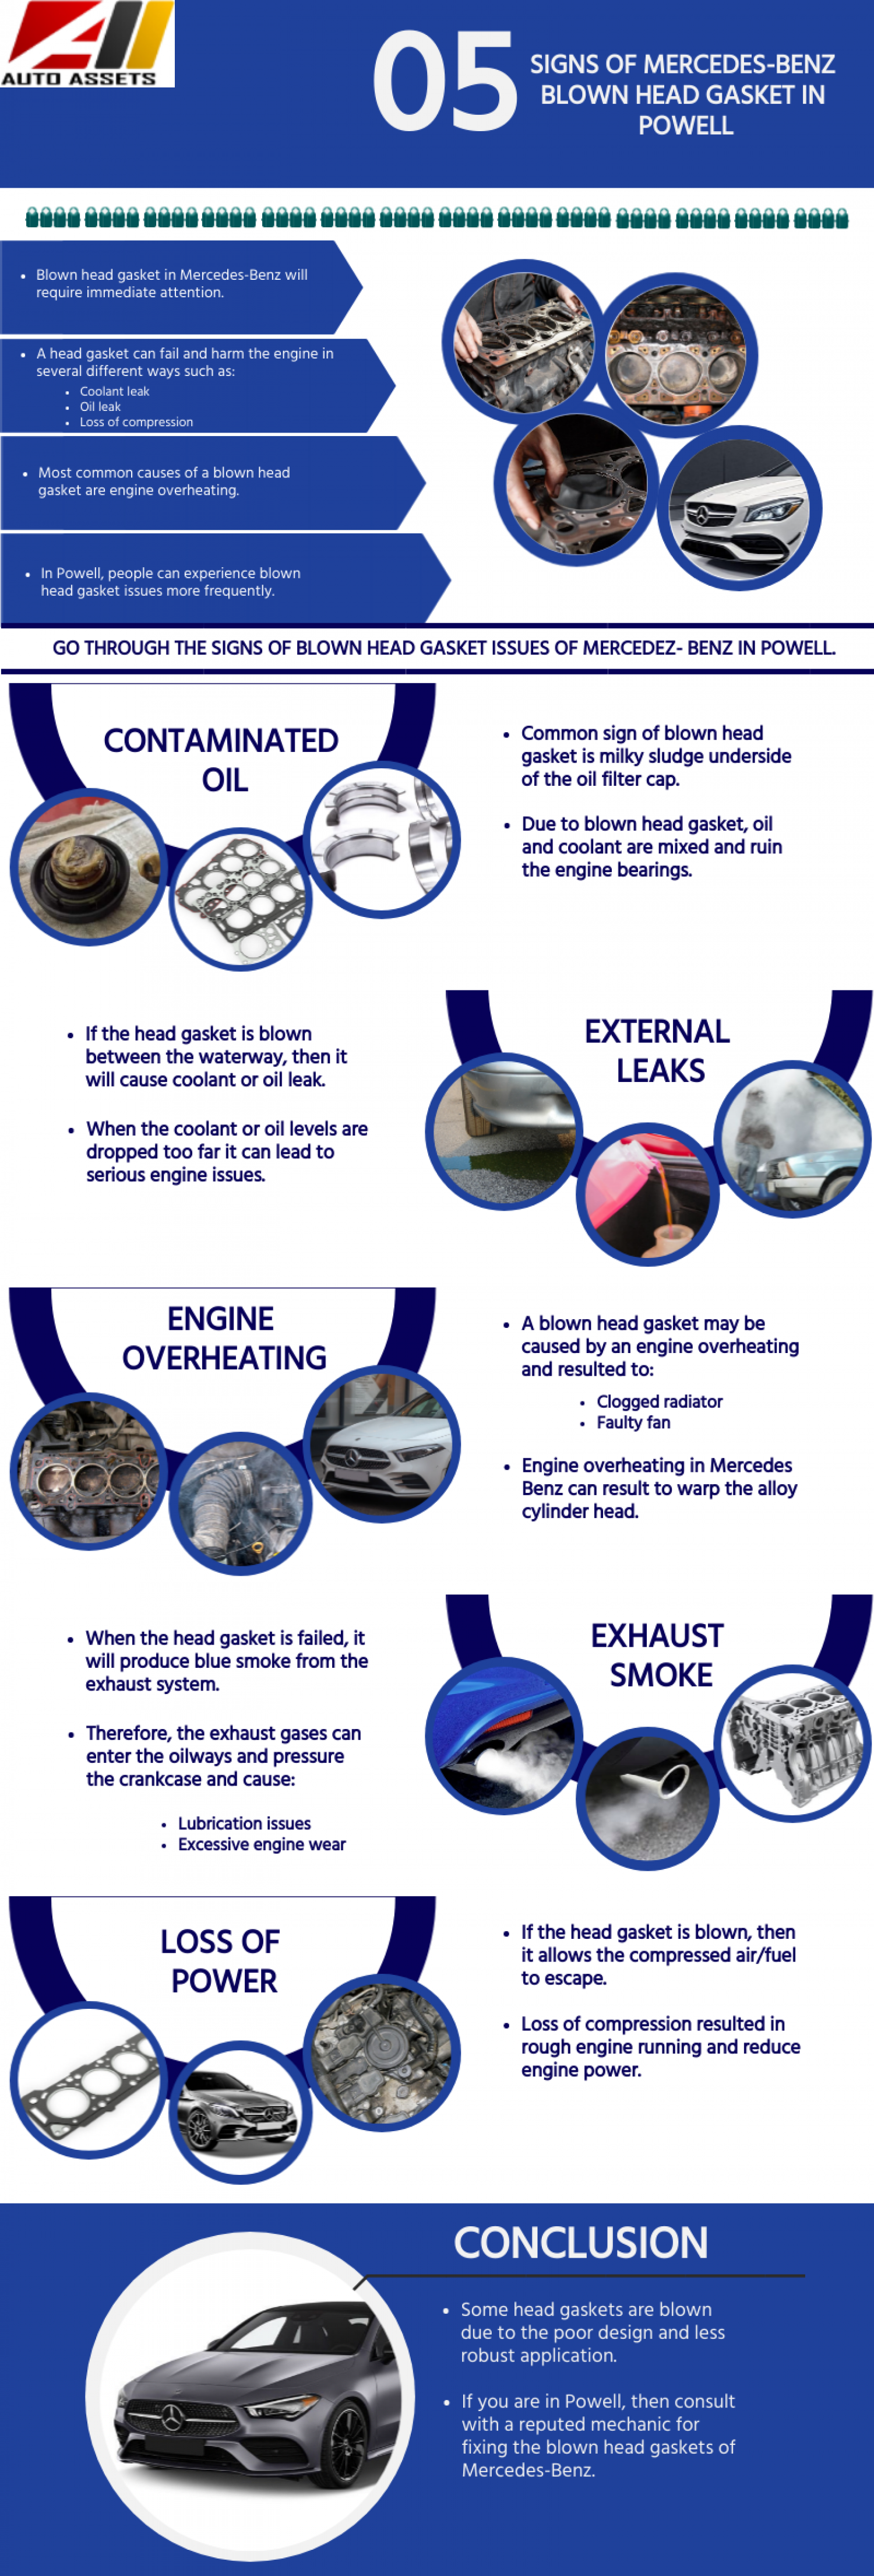 5 Signs of Mercedes-Benz Blown Head Gasket in Powell Infographic